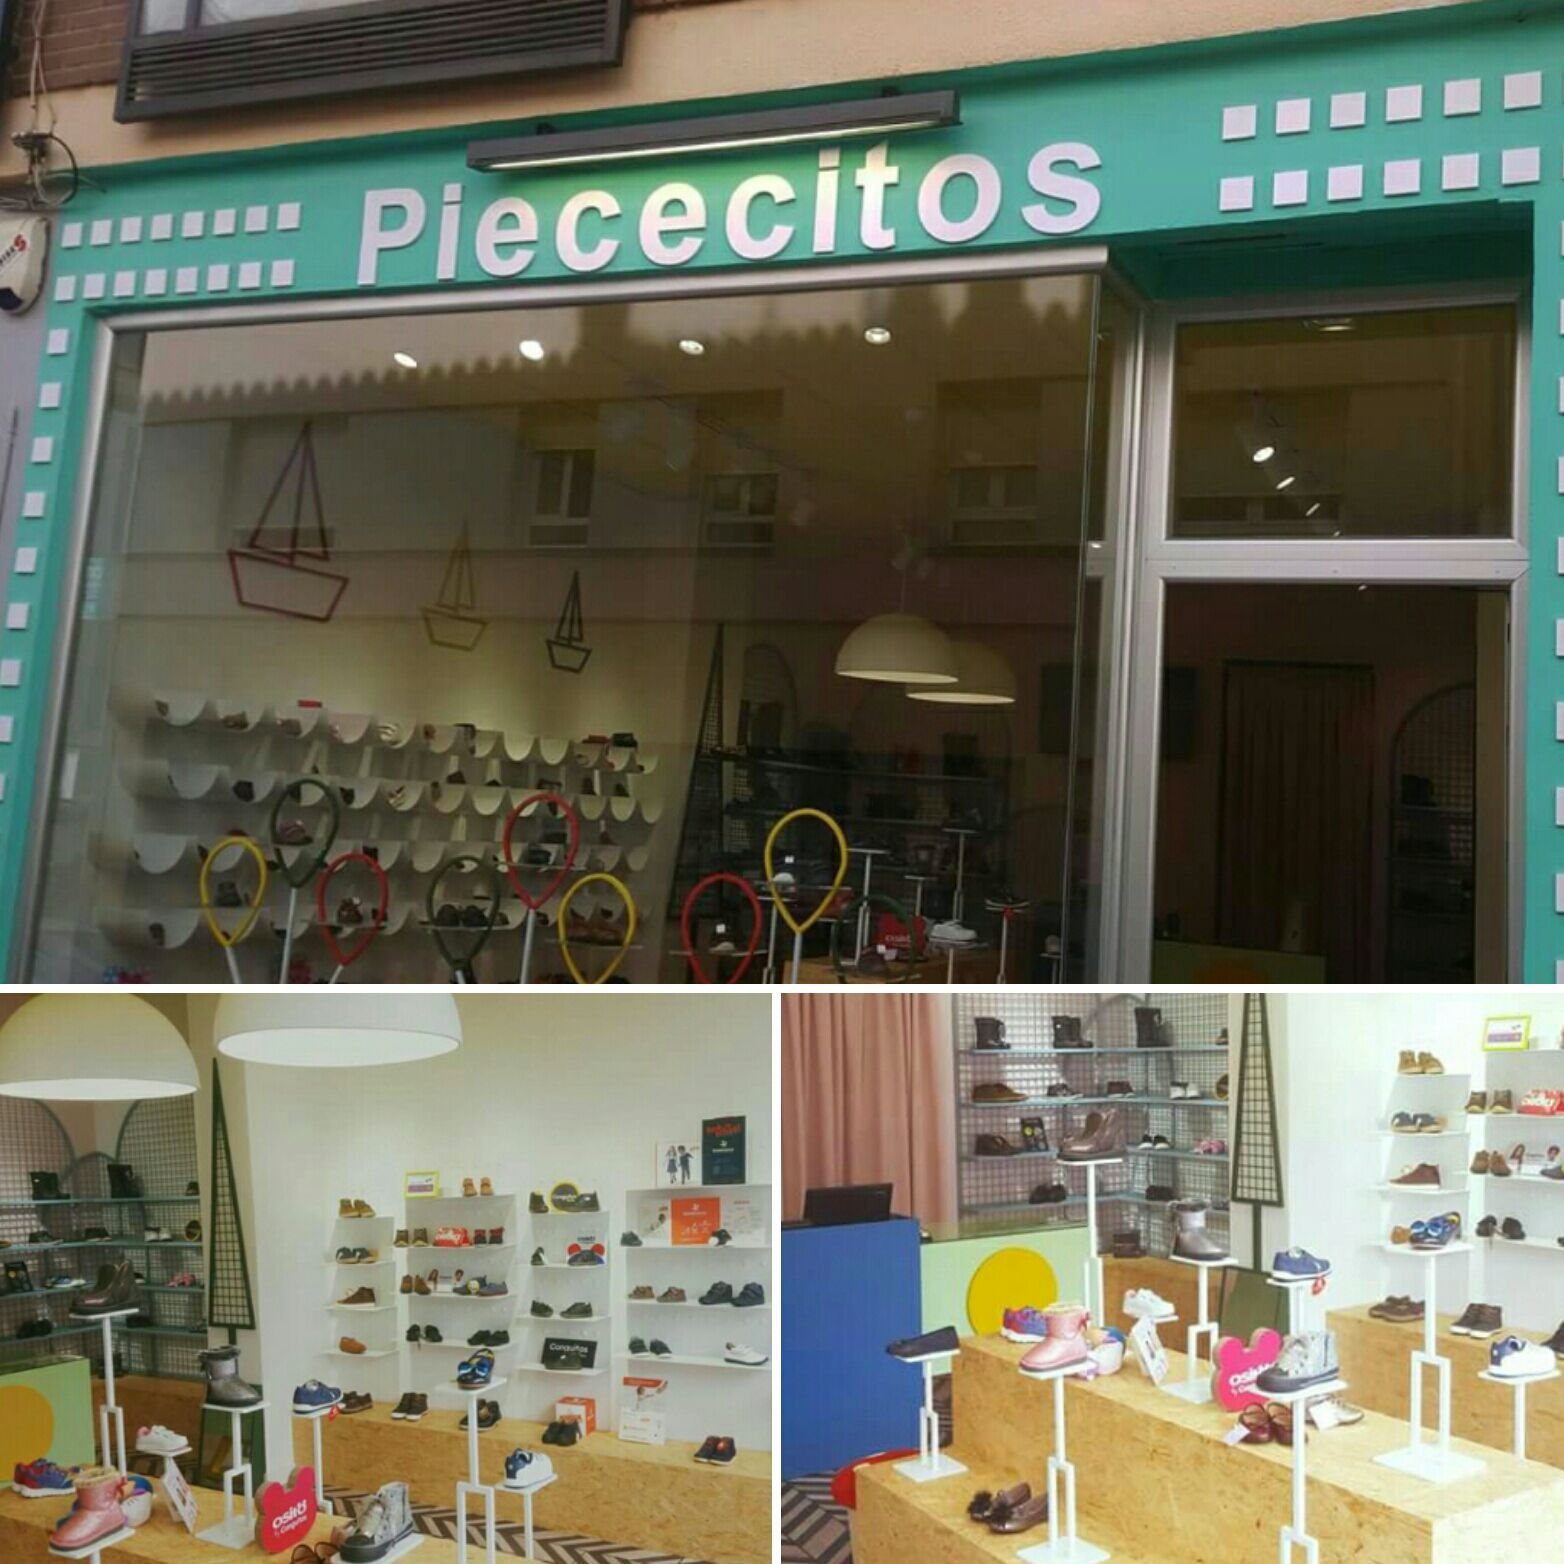 Piececitos